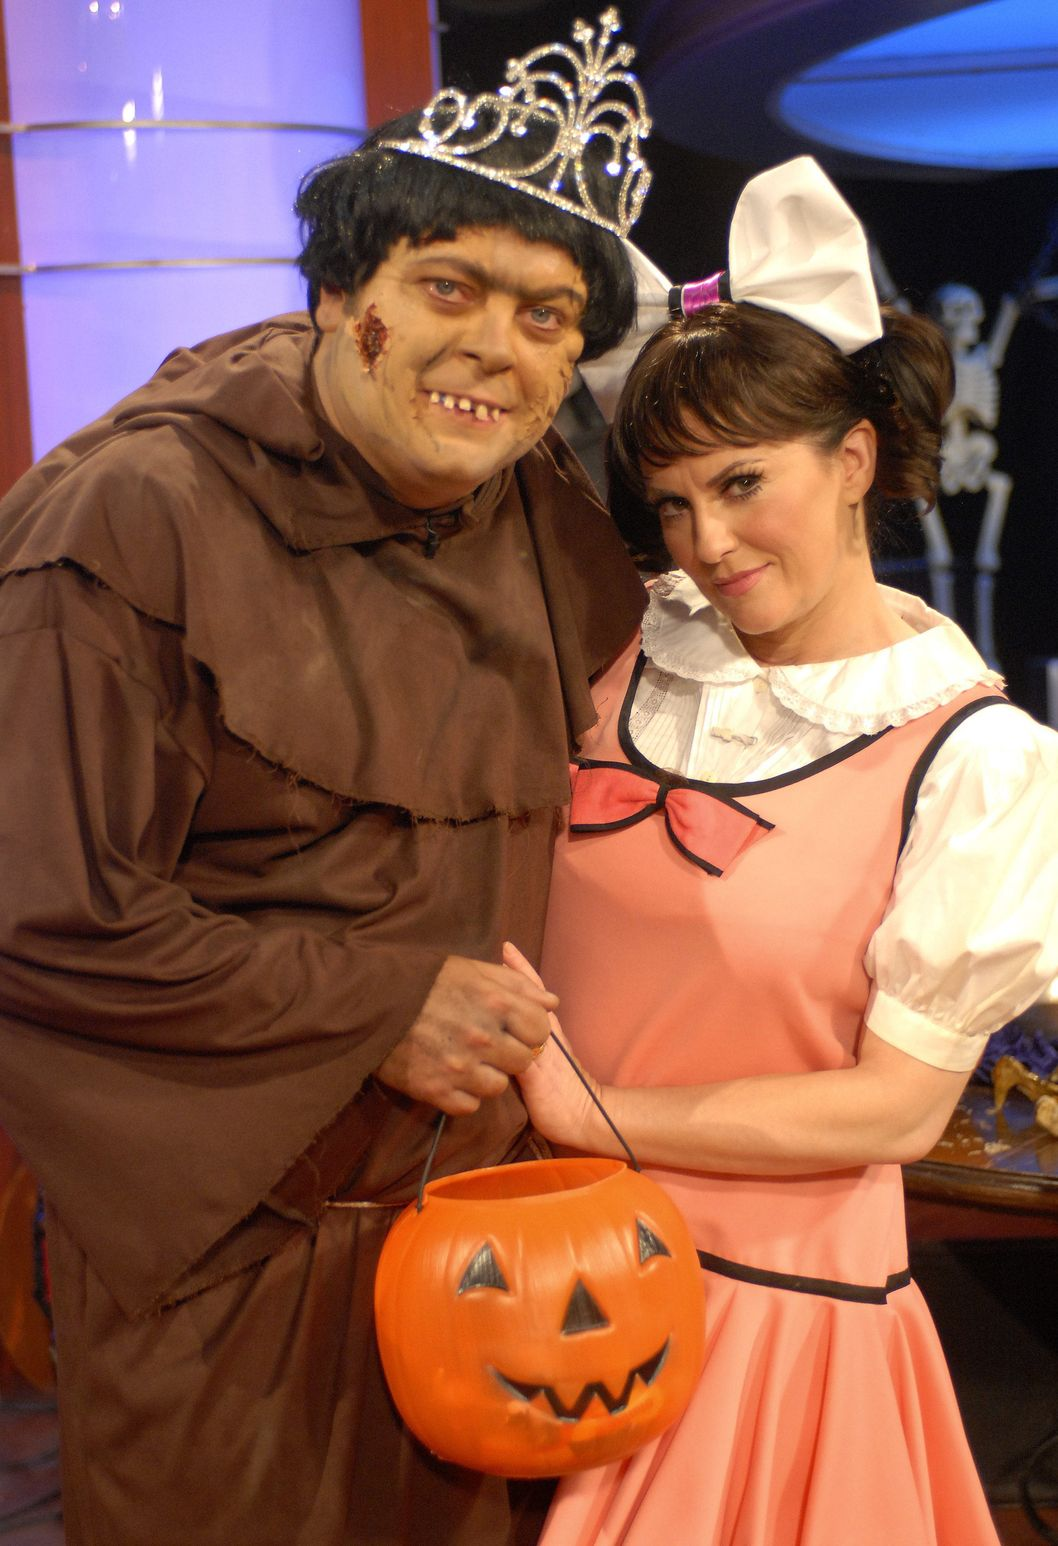 THE MEGAN MULLALLY SHOW -- Episode 1032 -- Pictured: (l-r) A crew member dressed in costume and host Megan Mullally dressed in costume as Edith Ann pose on October 31, 2006 .